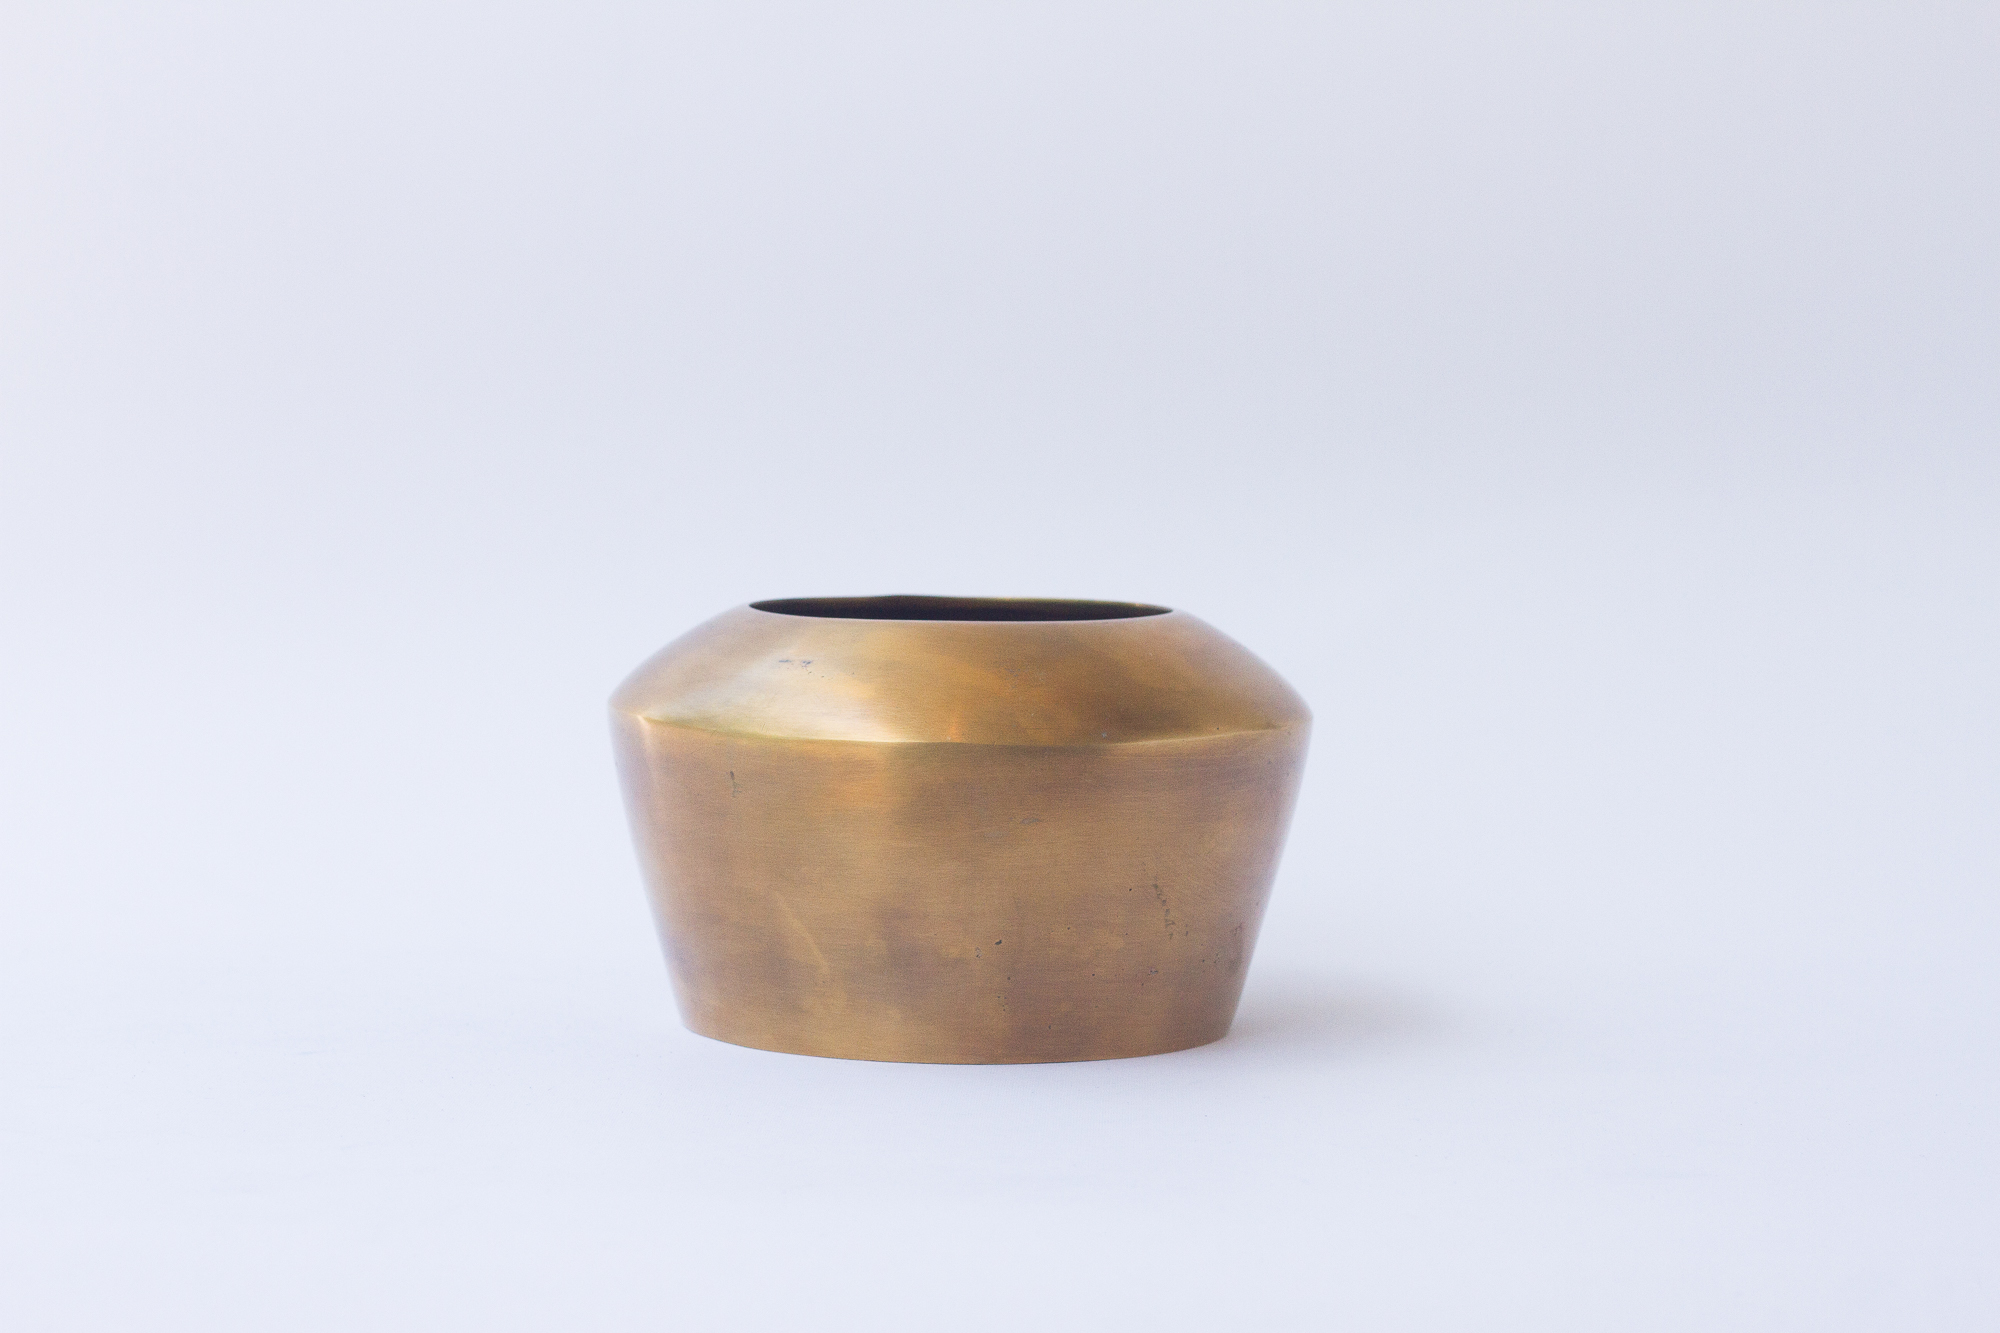 brass candle holder large.jpg